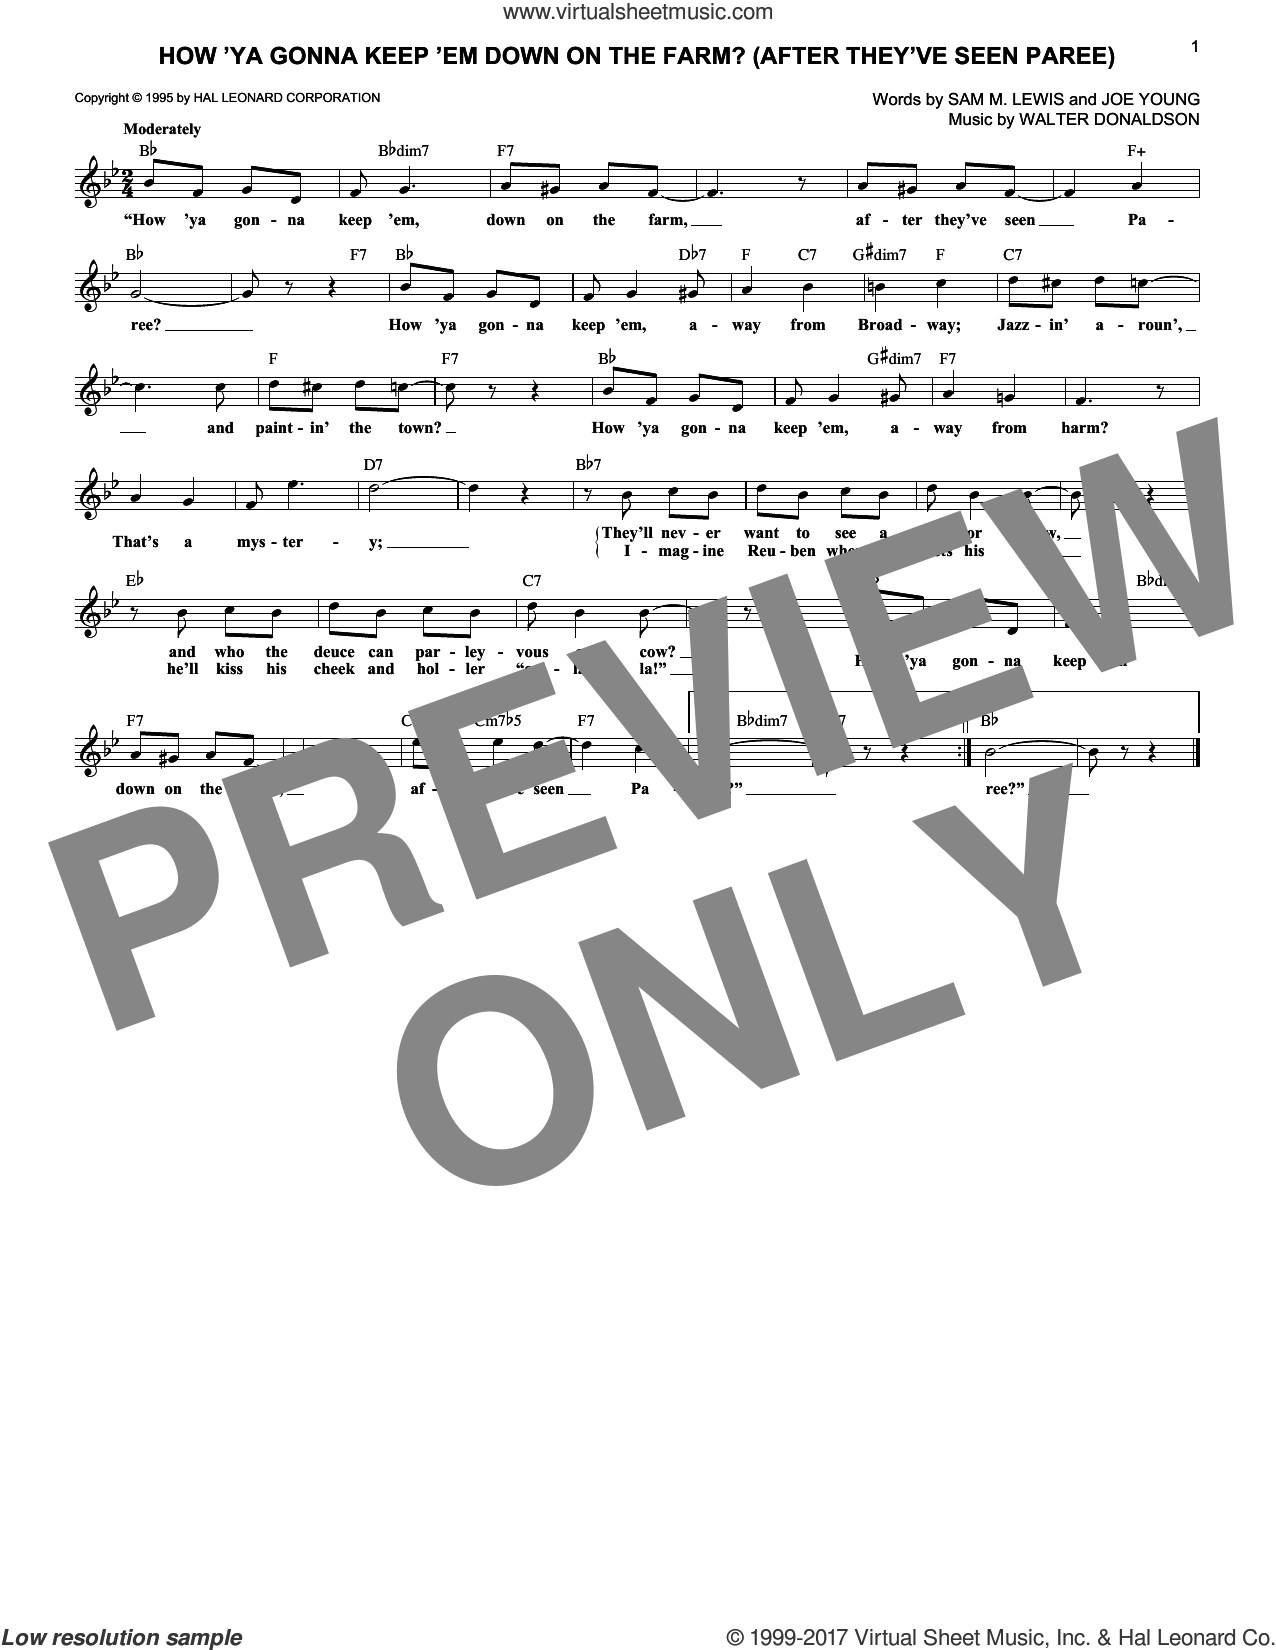 How 'Ya Gonna Keep 'em Down On The Farm? (After They've Seen Paree) sheet music for voice and other instruments (fake book) by Walter Donaldson, Nora Bayes, Joe Young and Sam Lewis, intermediate skill level